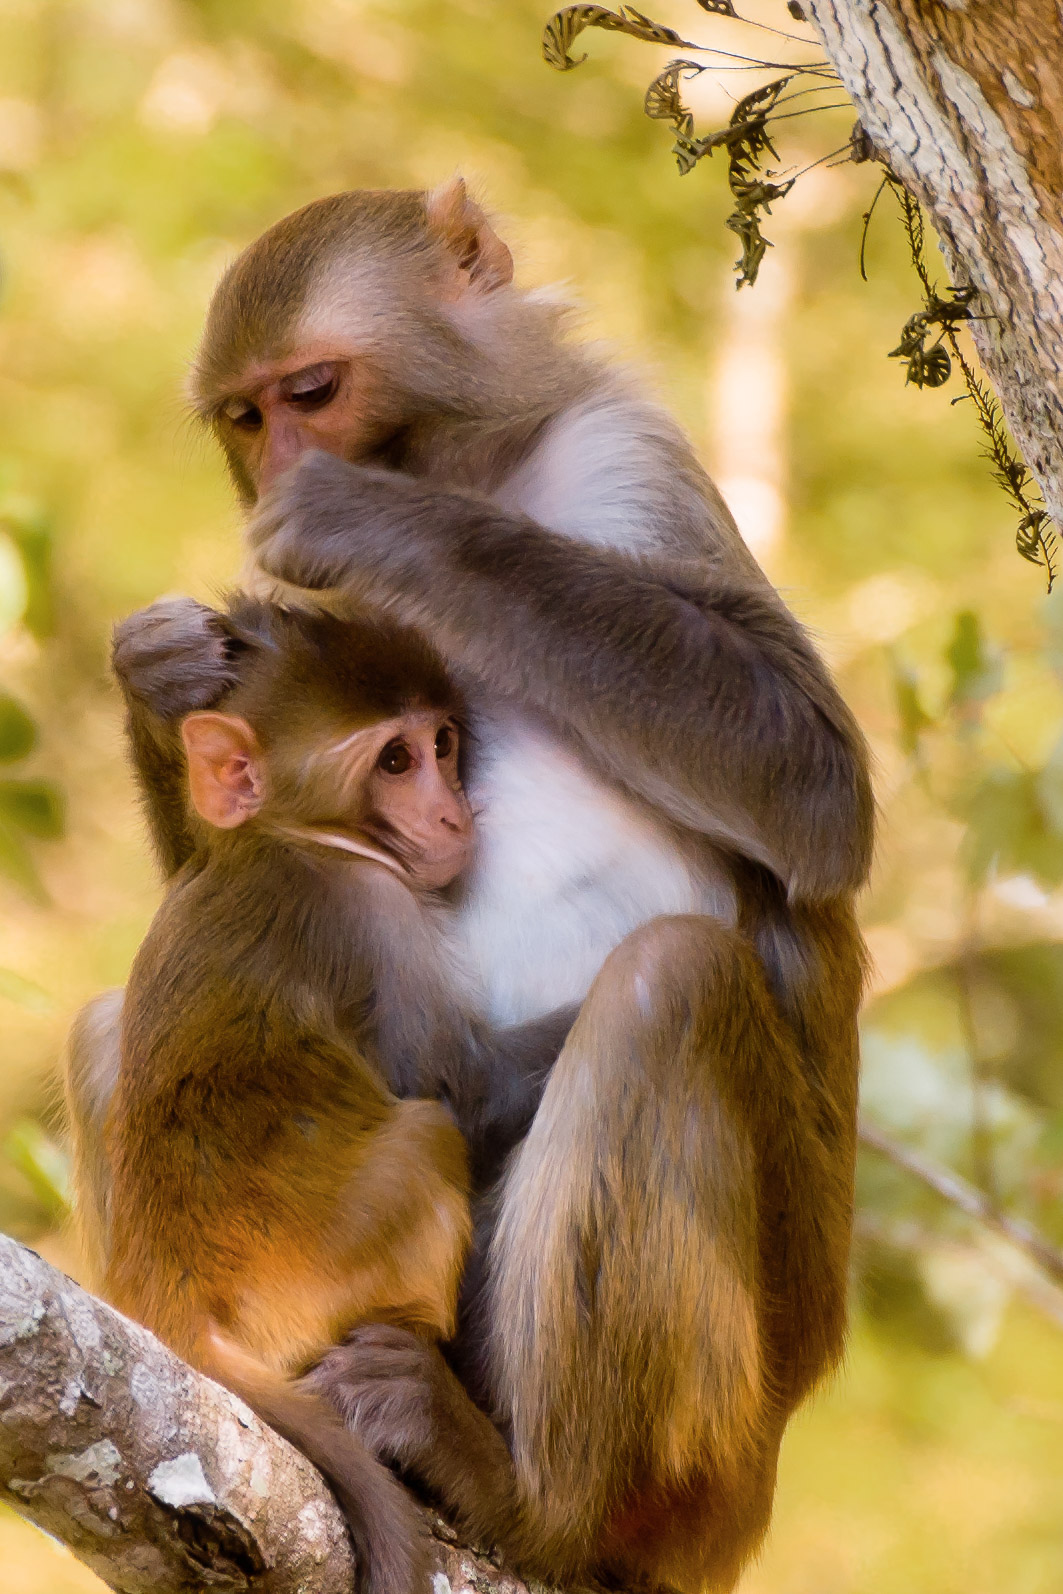 Rhesus Macaque grooming infant - Silver Springs River, Florida